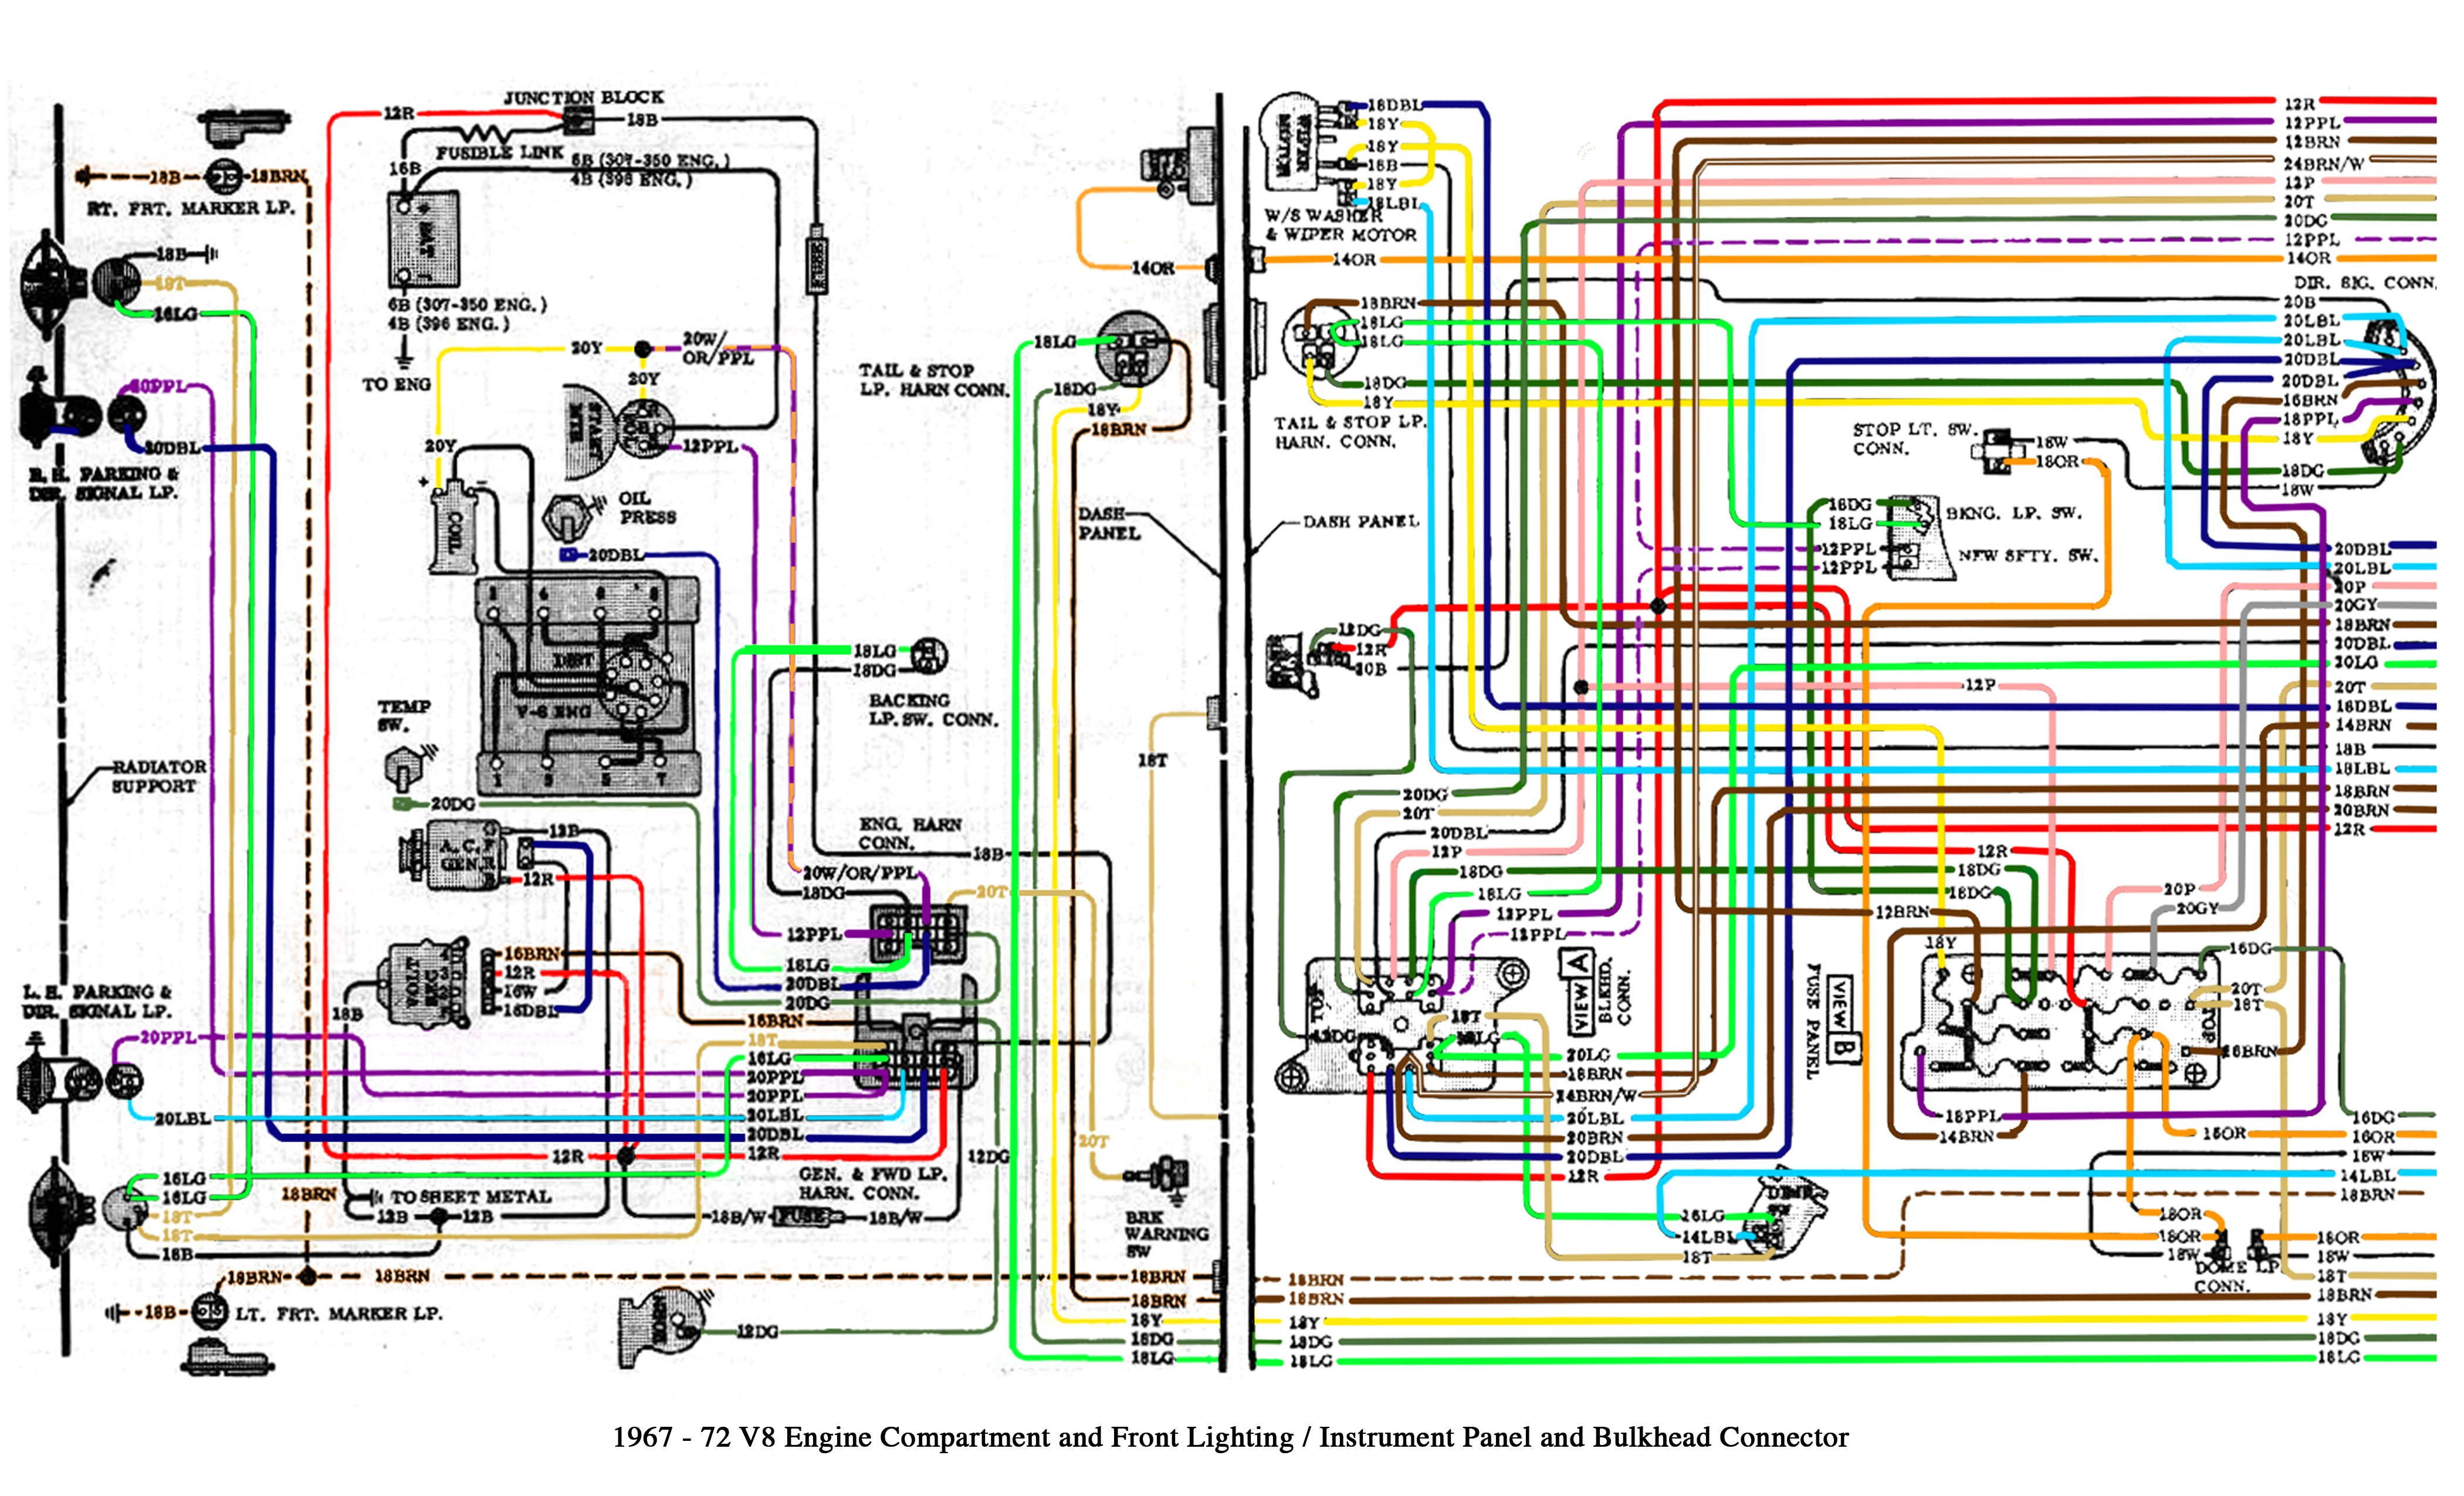 1974 Sportster Directional Light Wiring Diagram Color Wiring Diagram Finished the 1947 Present Chevrolet Of 1974 Sportster Directional Light Wiring Diagram